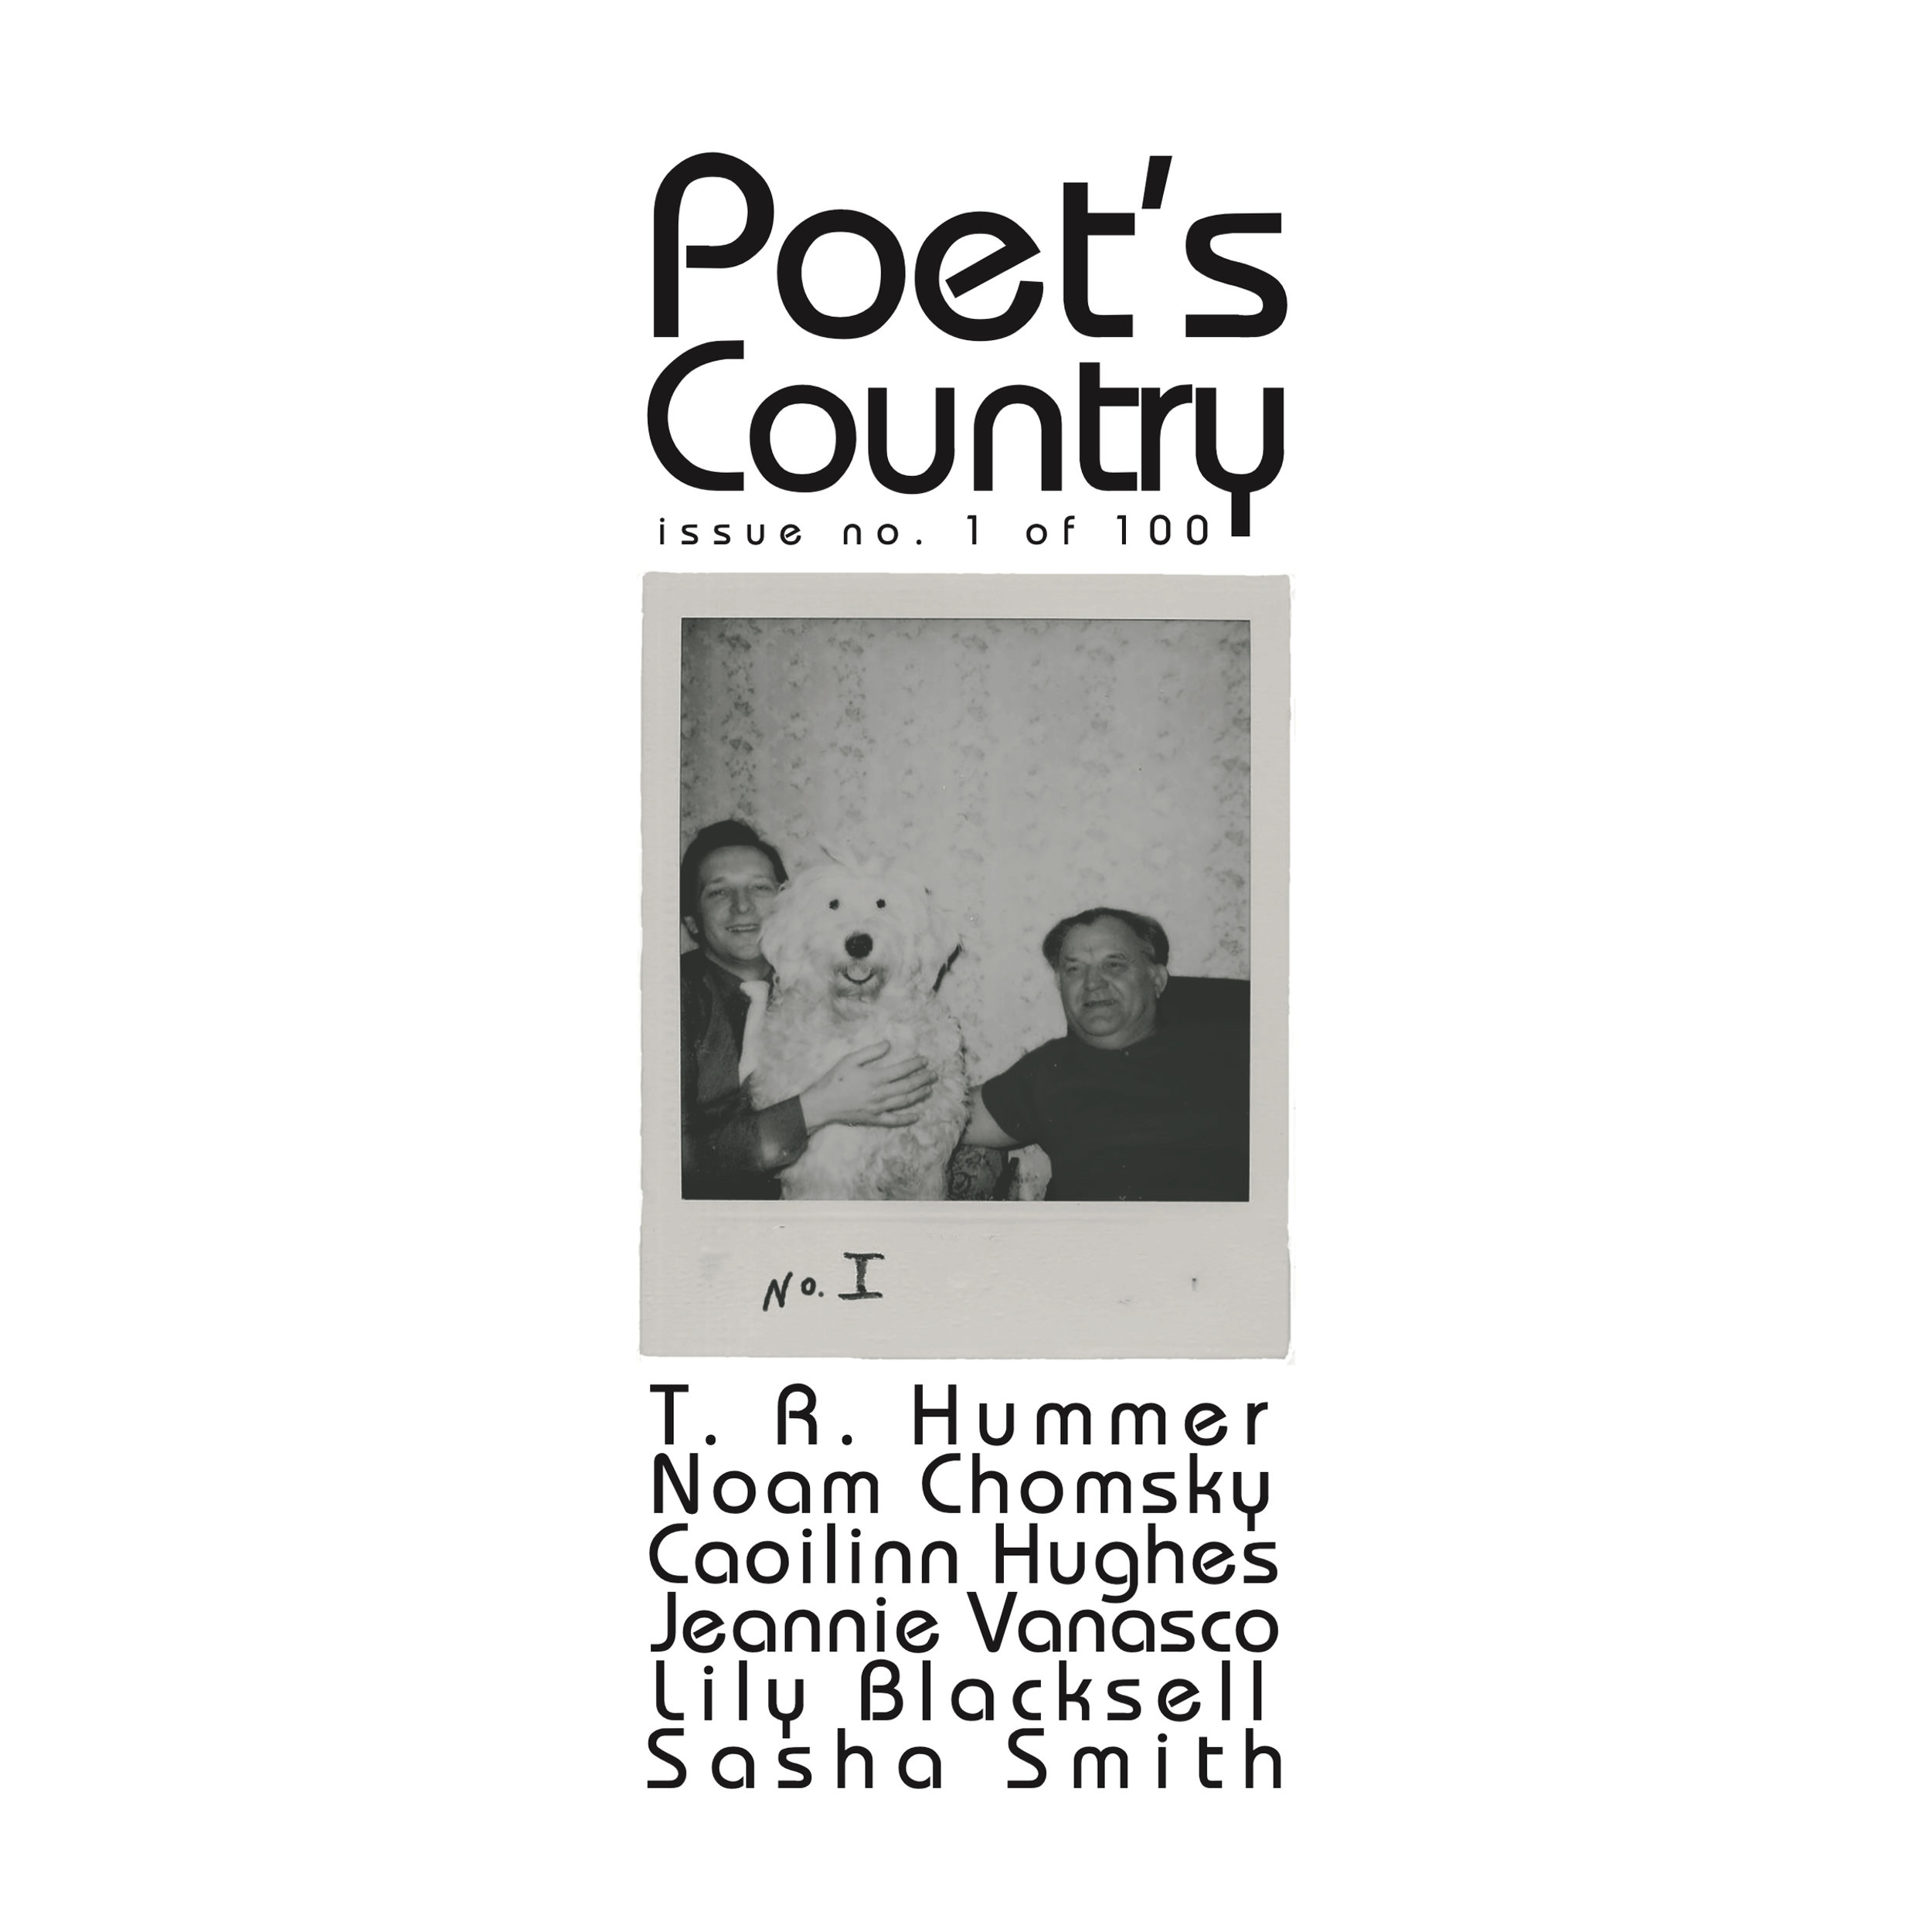 Poet's Country 1 Square Cover.jpg